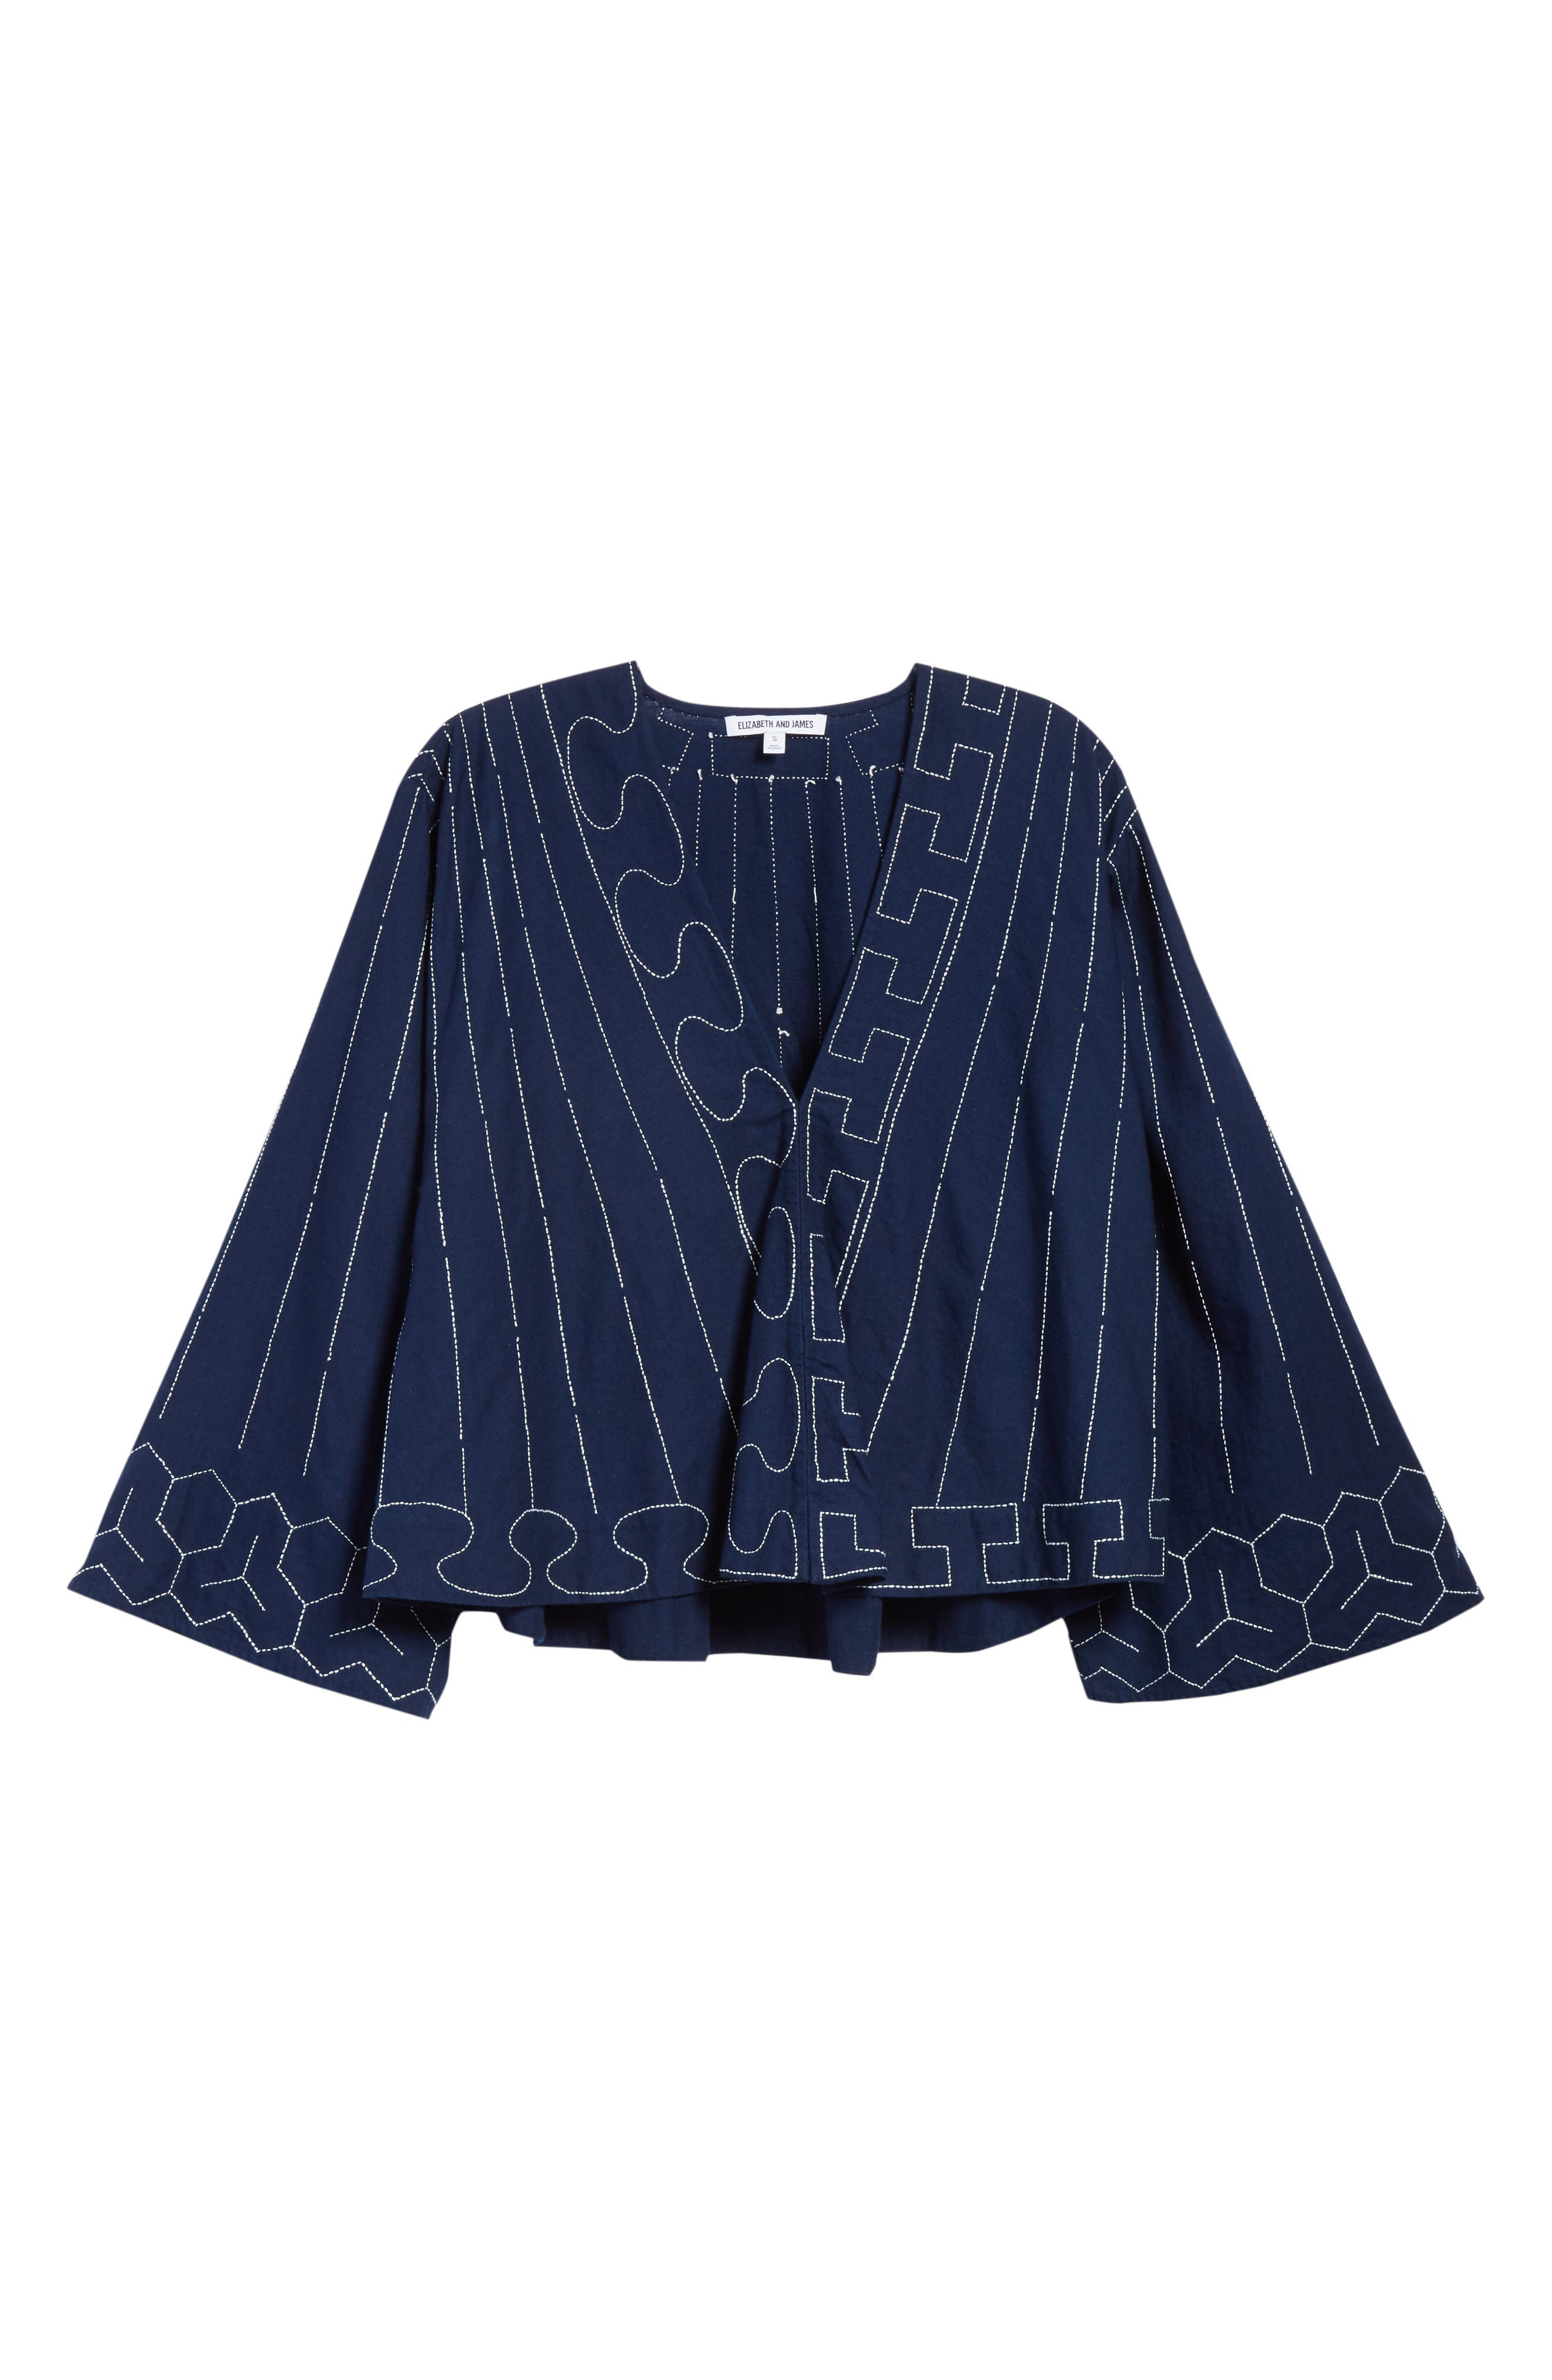 Orchid Embroidered Top,                             Alternate thumbnail 6, color,                             Dark Indigo